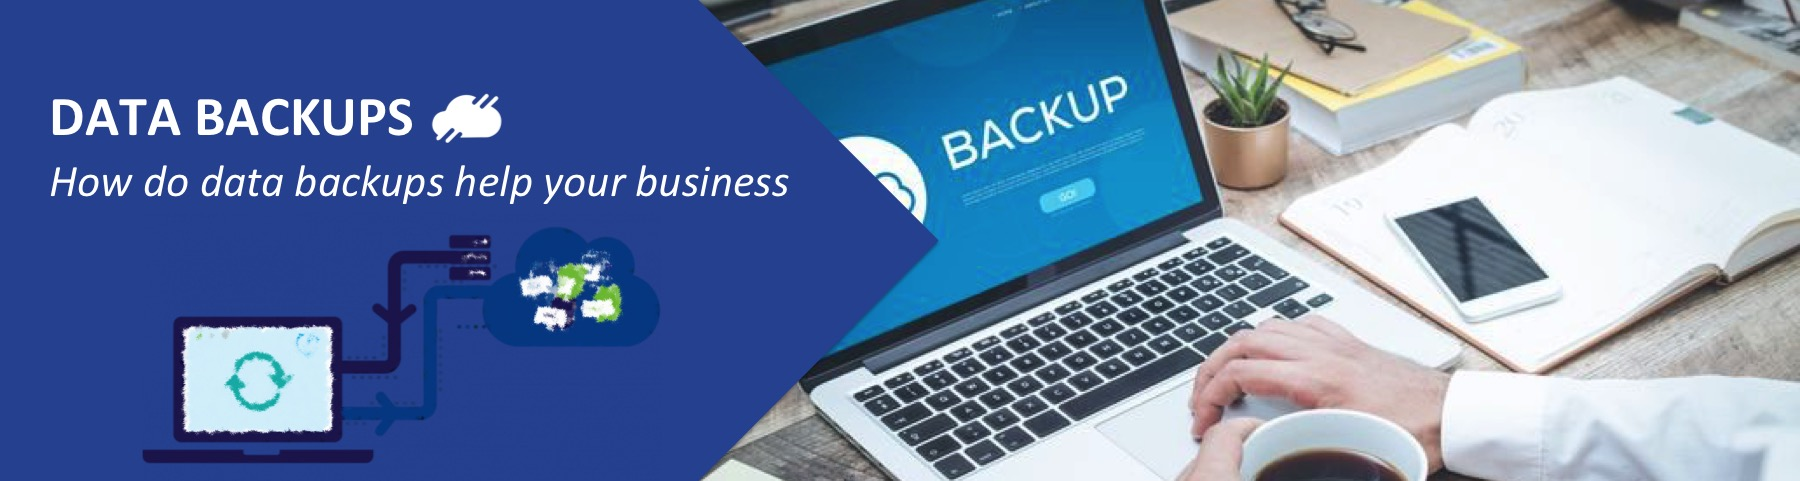 How do Backups help your business?